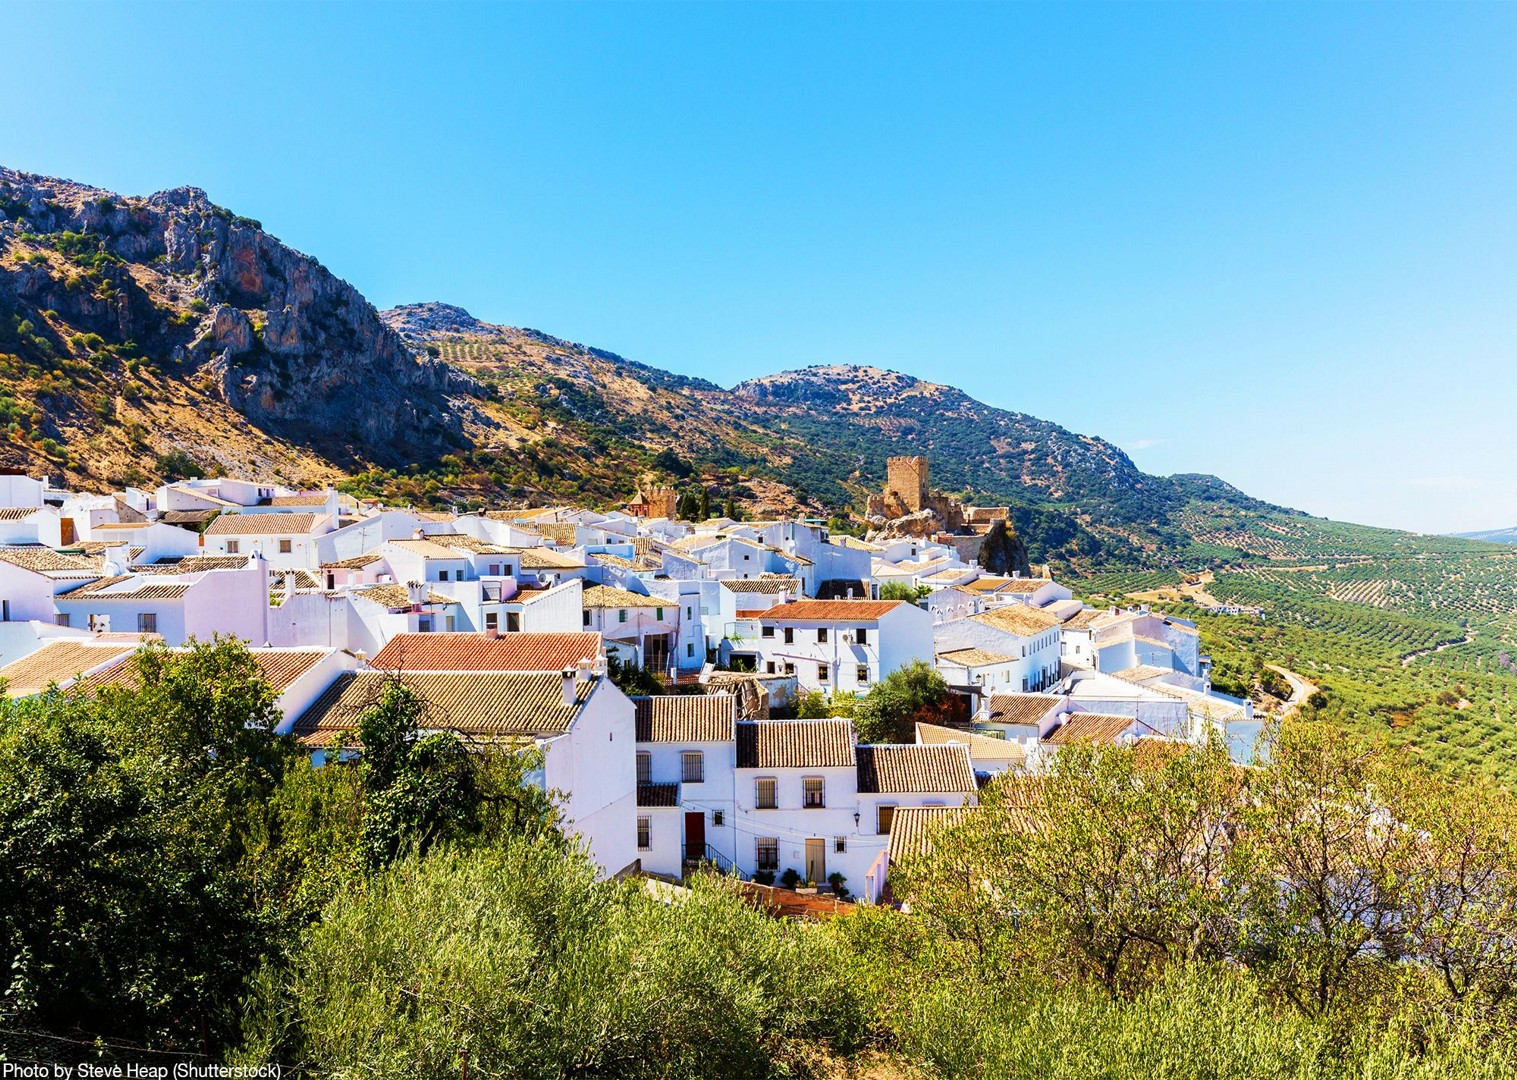 visit-grazalema-town-limestone-mountains-cycling-holiday.jpg - Southern Spain - Andalucia - Los Pueblos Blancos - Road Cycling